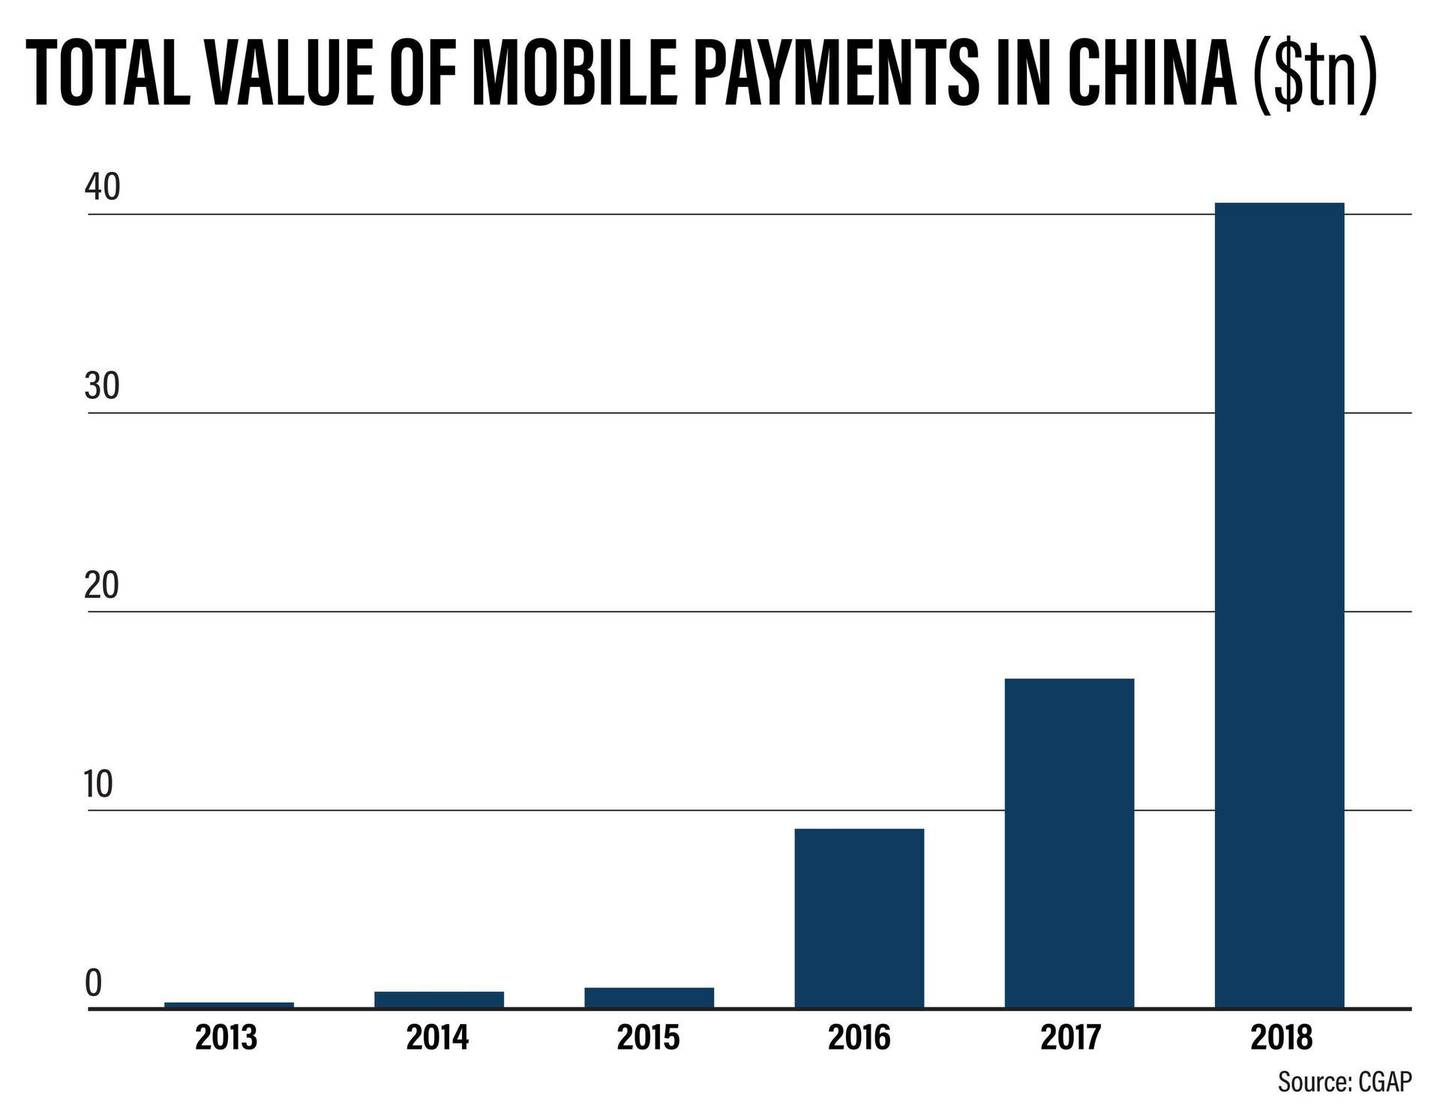 Value of mobile payments in China